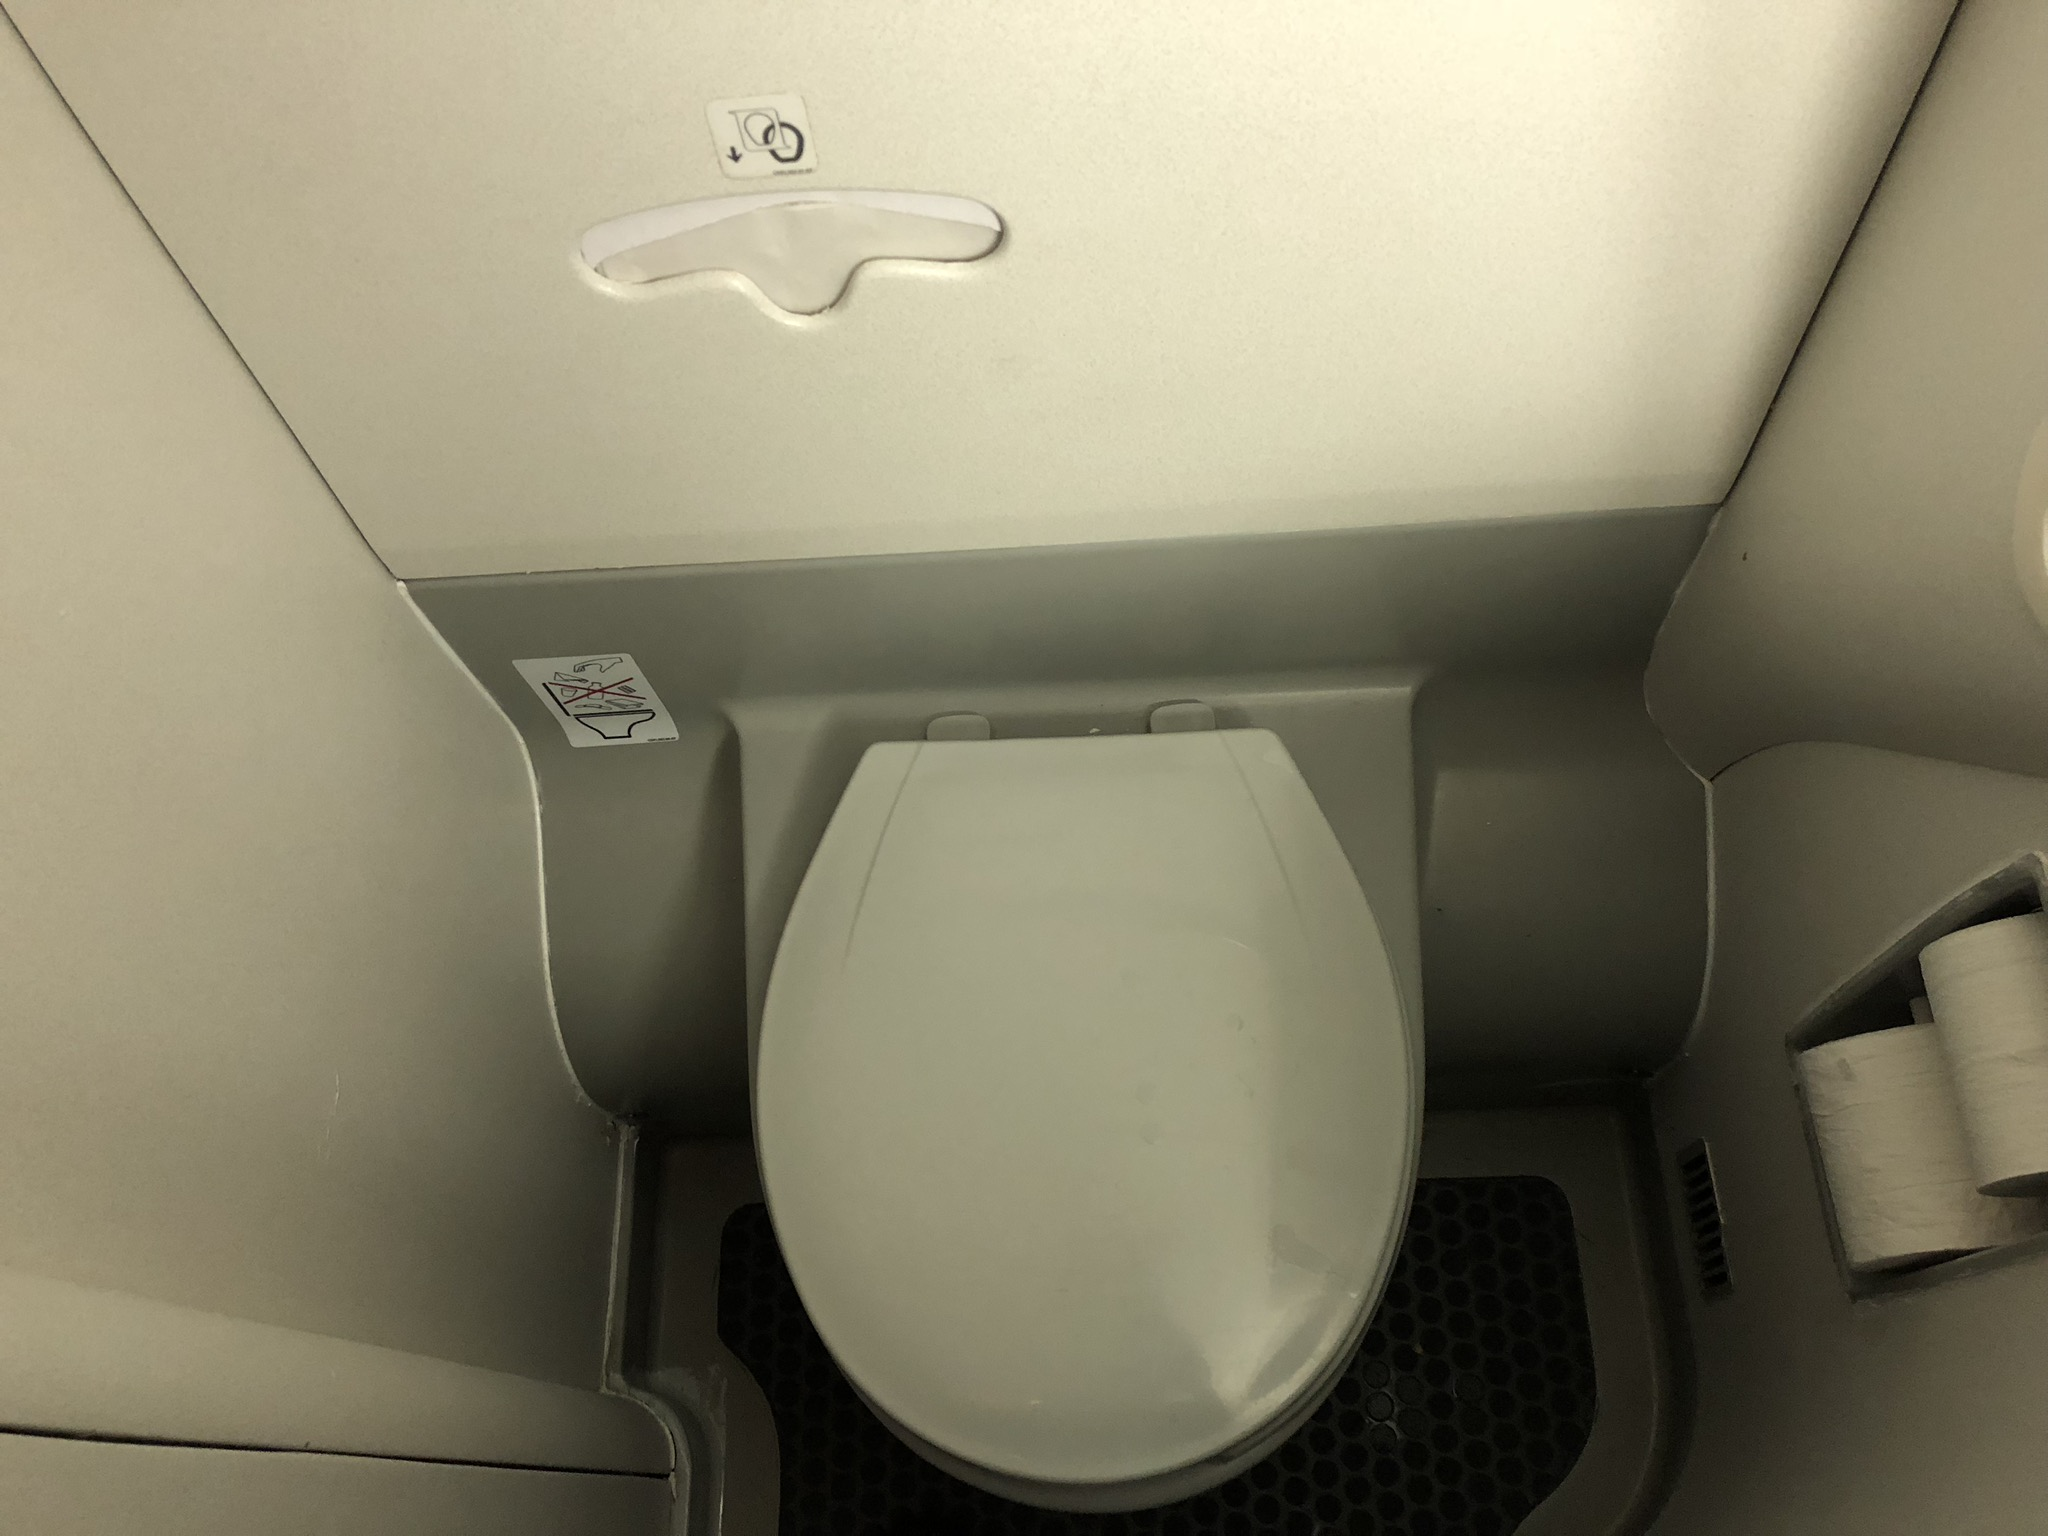 2020 american airlines domestic first hard bathroom toilet